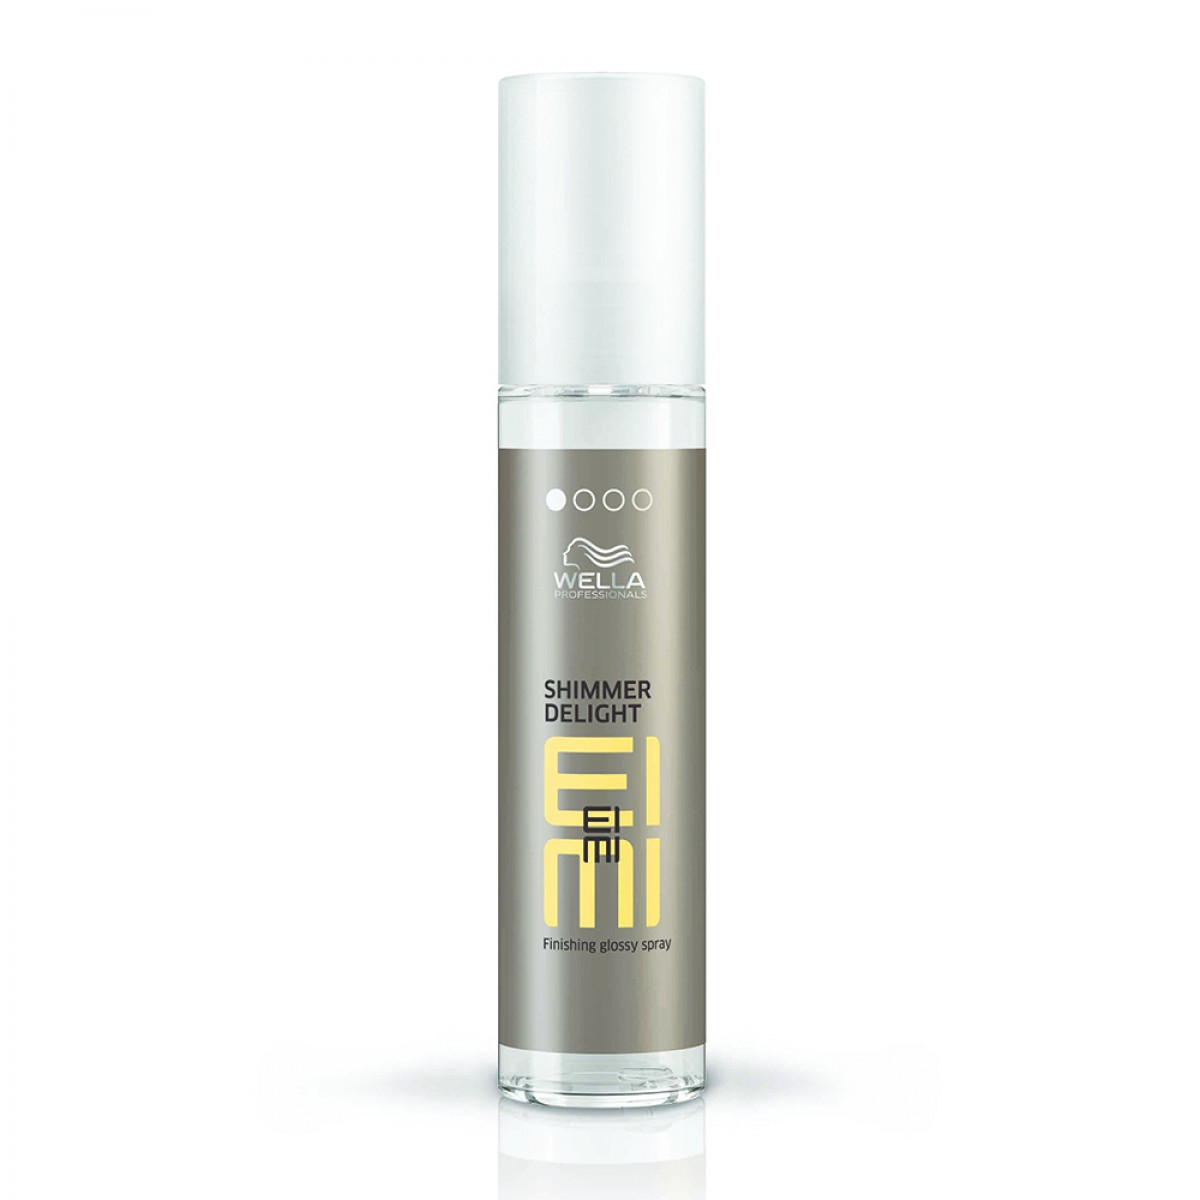 Spray protecteur gloss de brillance Shimmer Delight de Wella